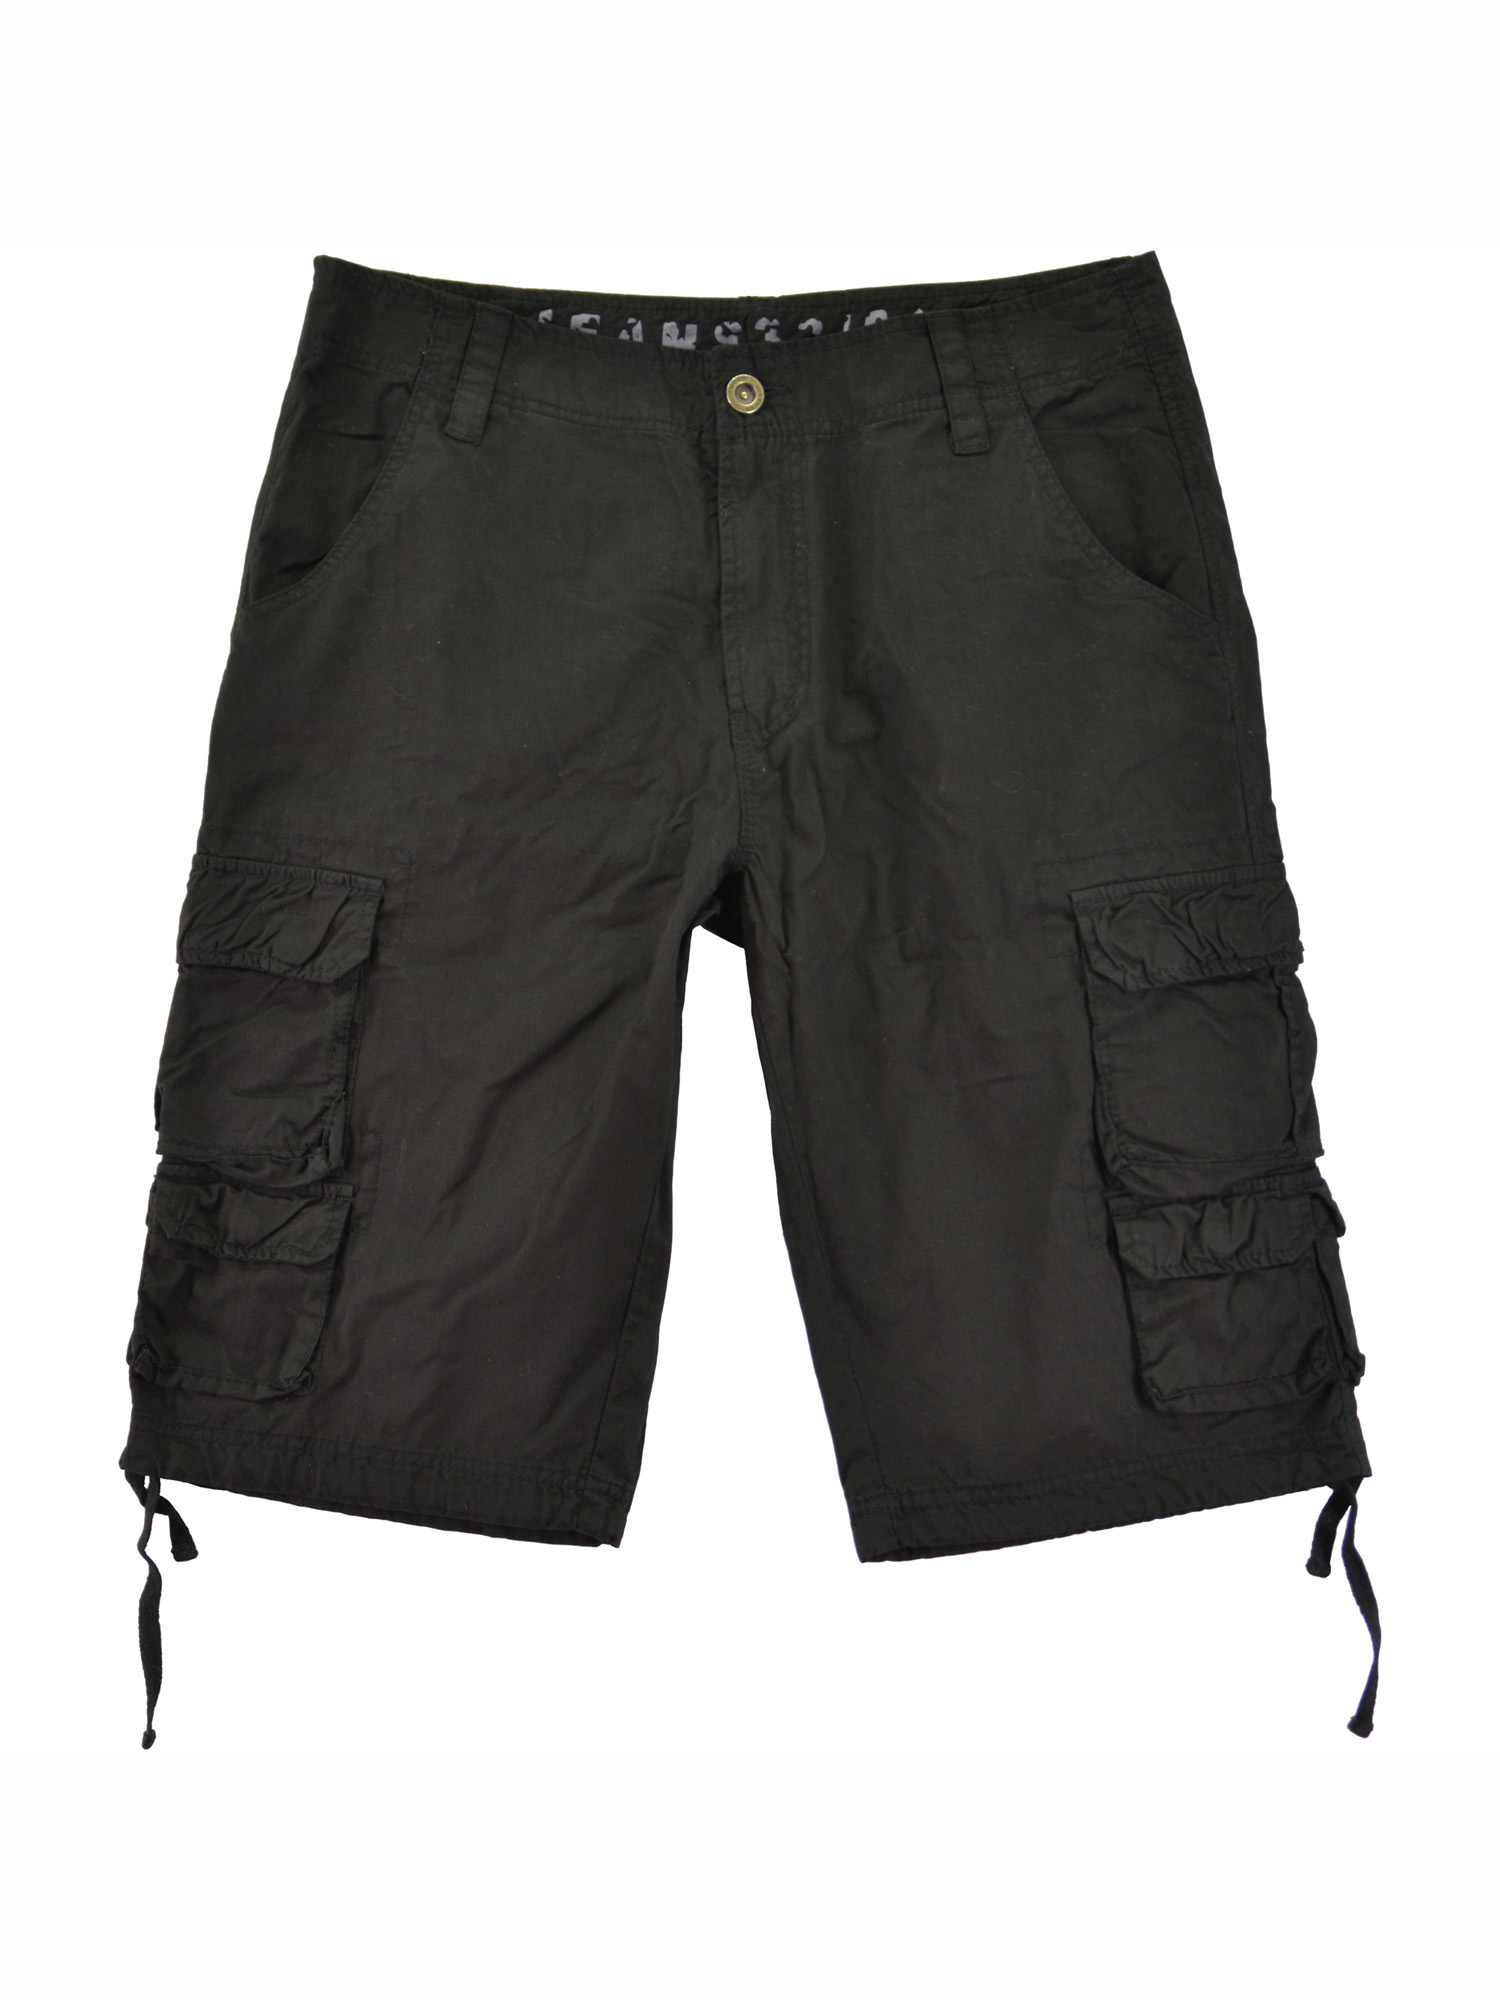 Mens Military Cargo Shorts 818s-Black Size 30-42